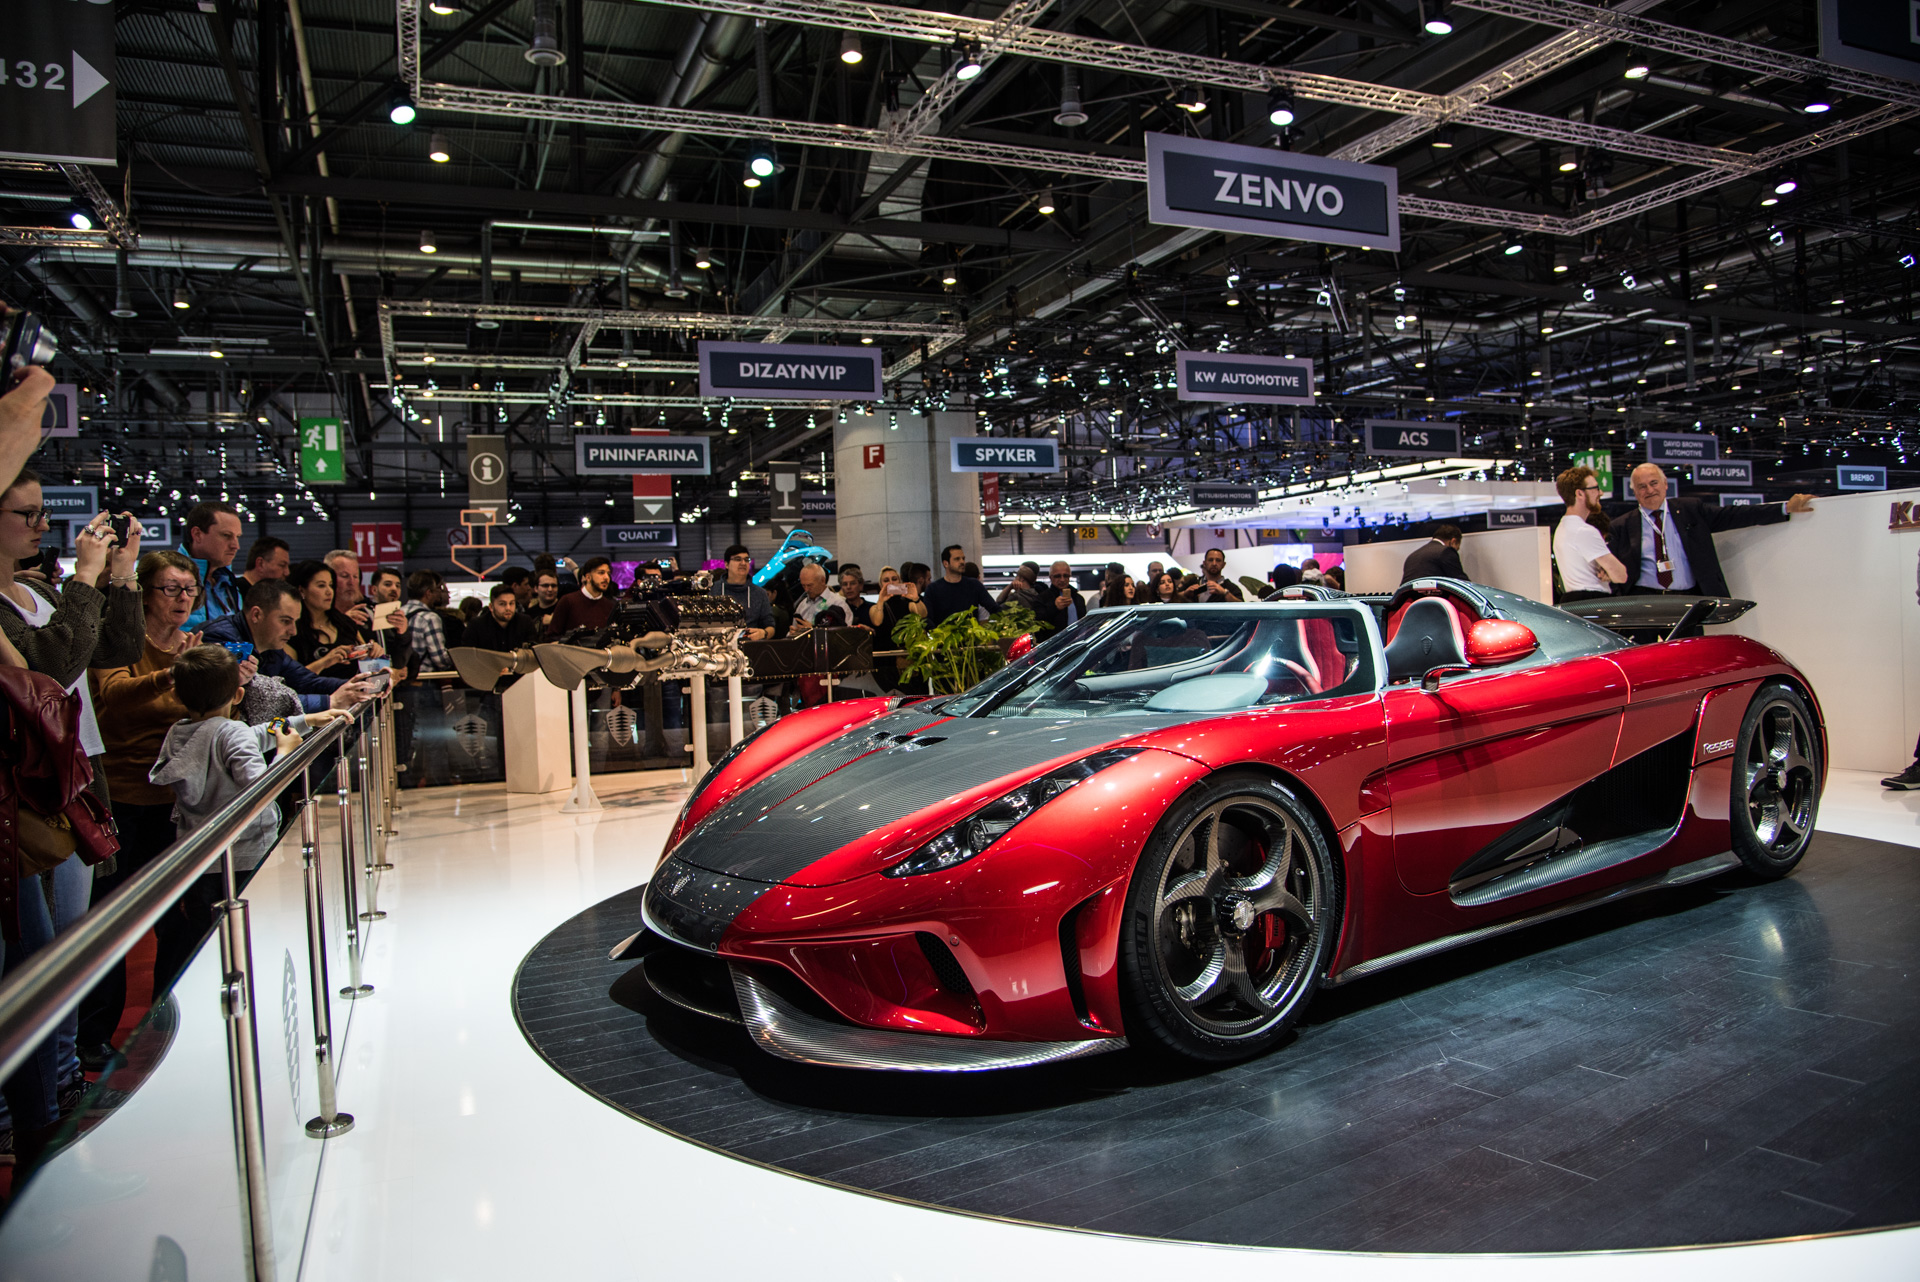 geneva-international-motor-show-igor-sinitsin-119